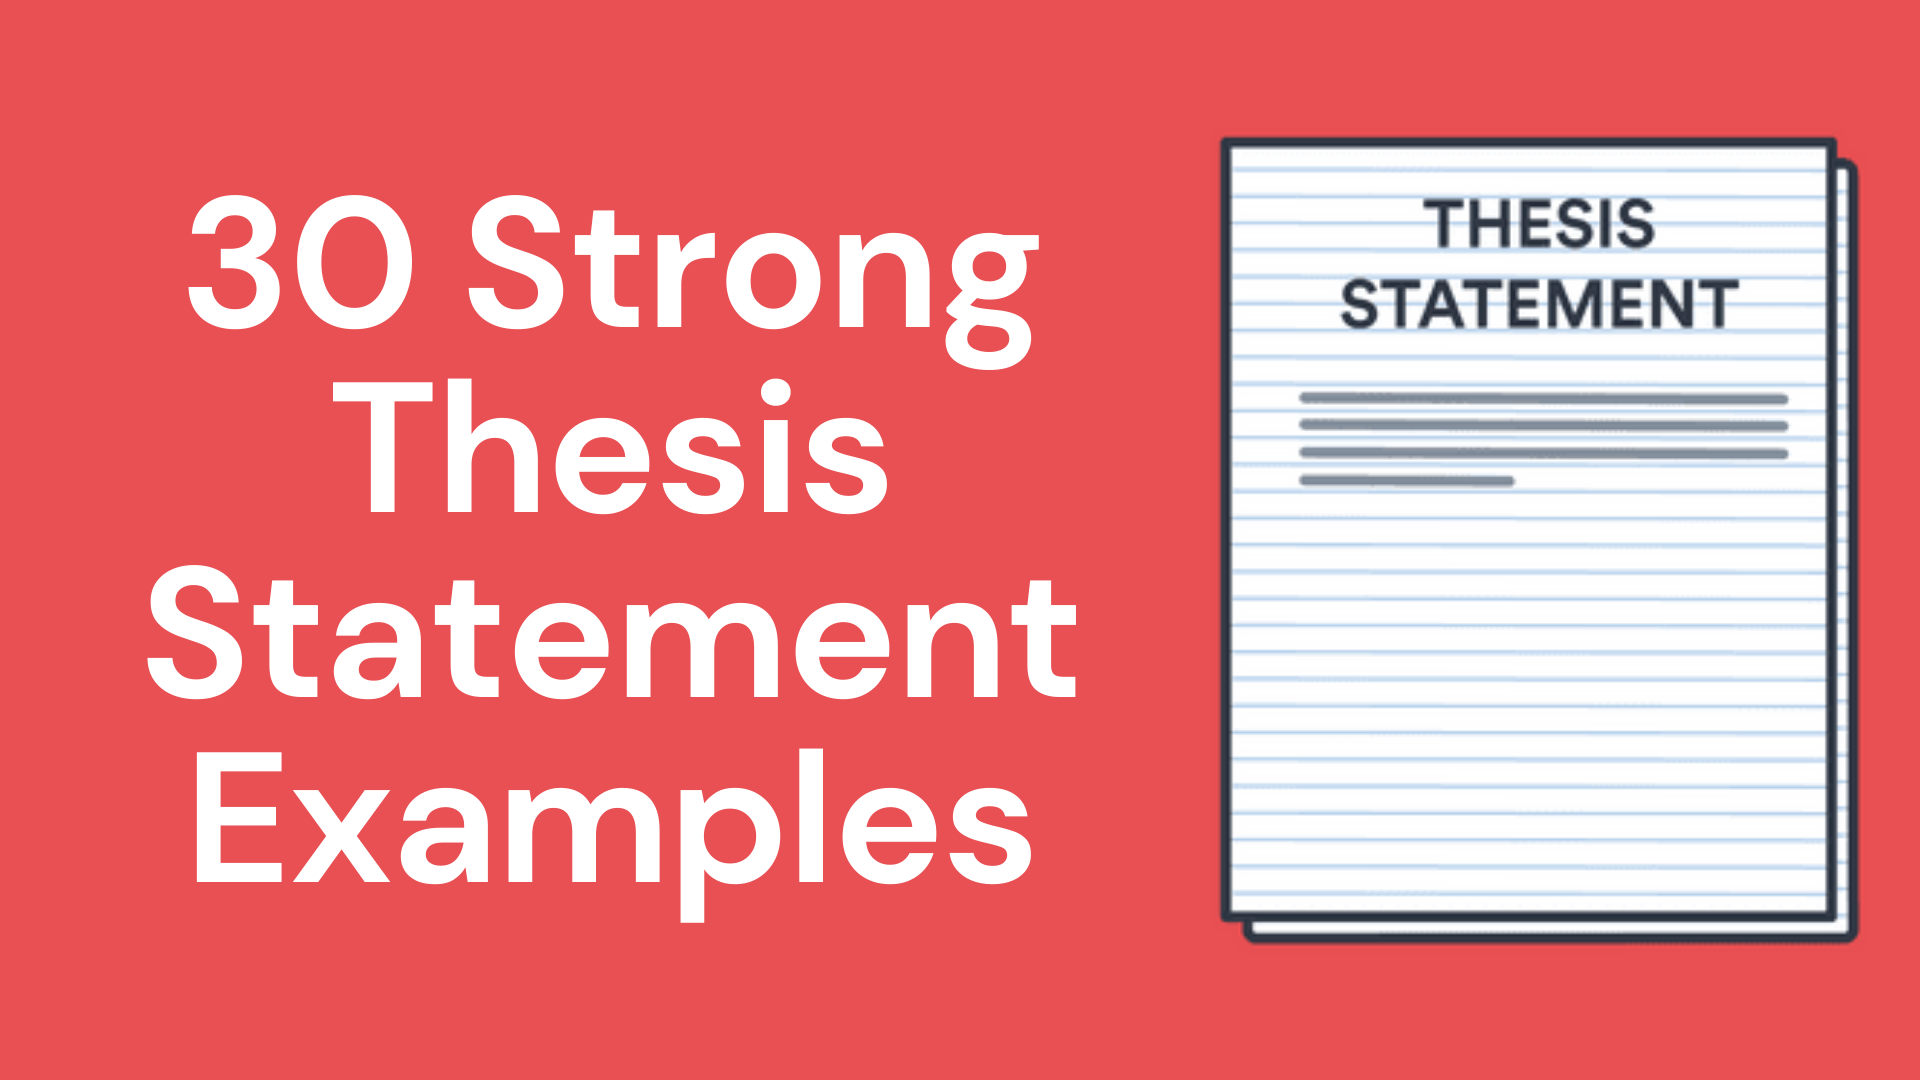 7 Strong Thesis Statement Examples For Your Research Paper